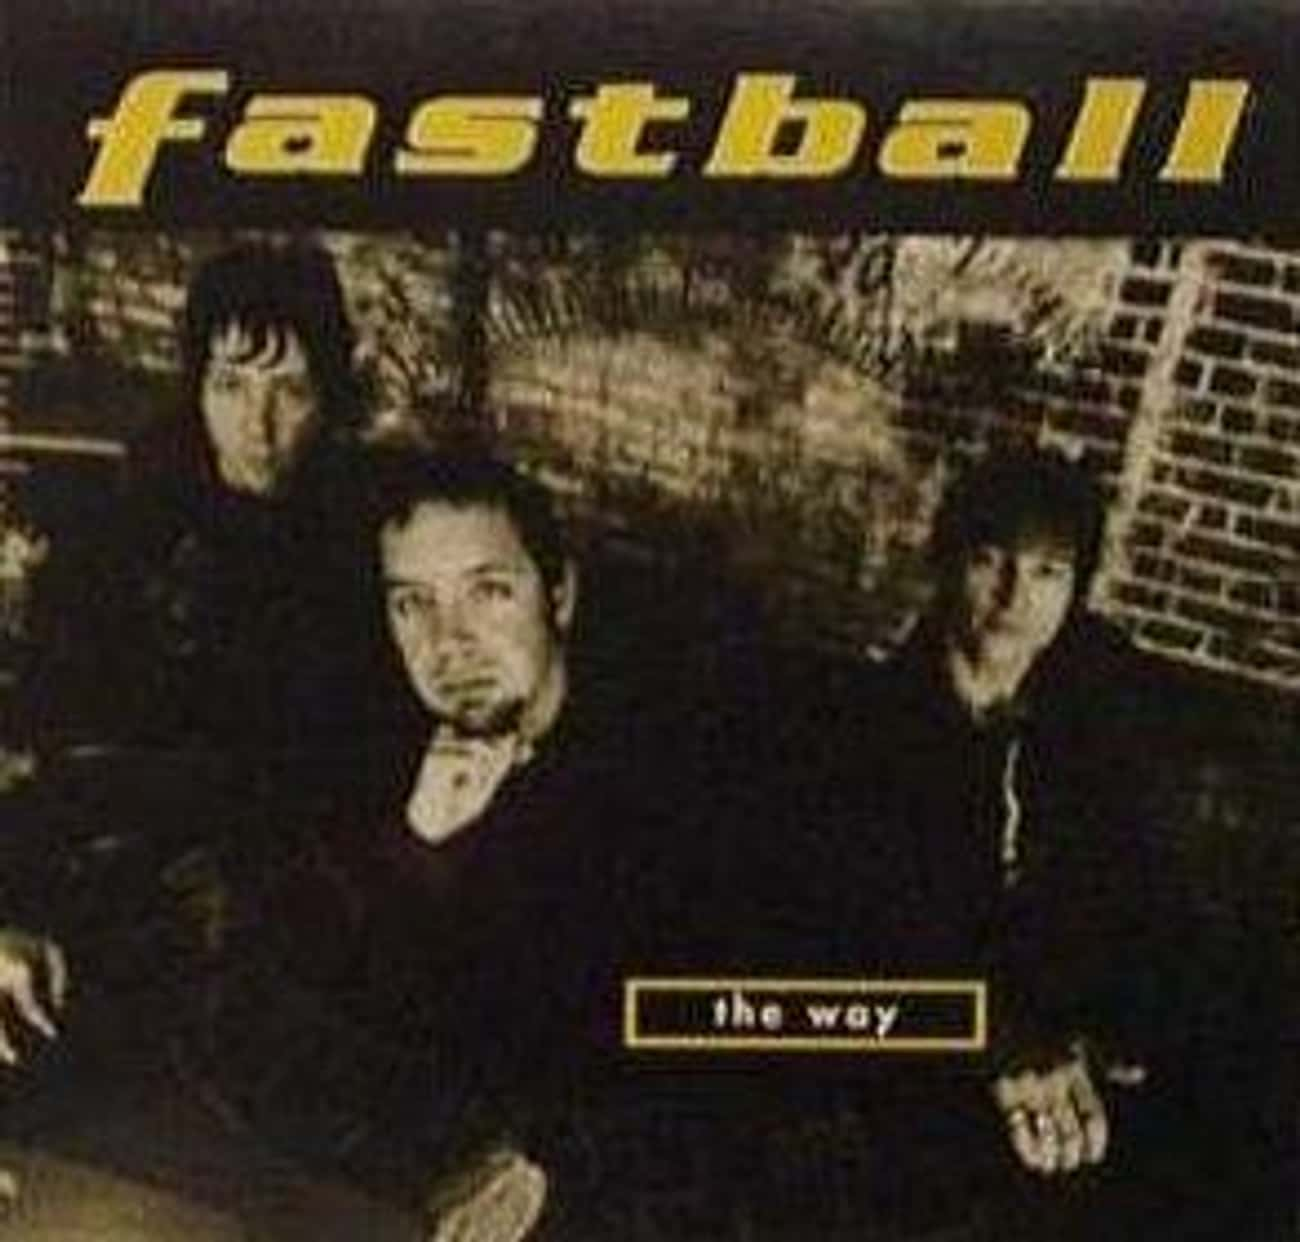 Fastball - 'The Way' is listed (or ranked) 2 on the list 25 Depressing Stories Behind Some Of The Most Popular Songs In Modern History